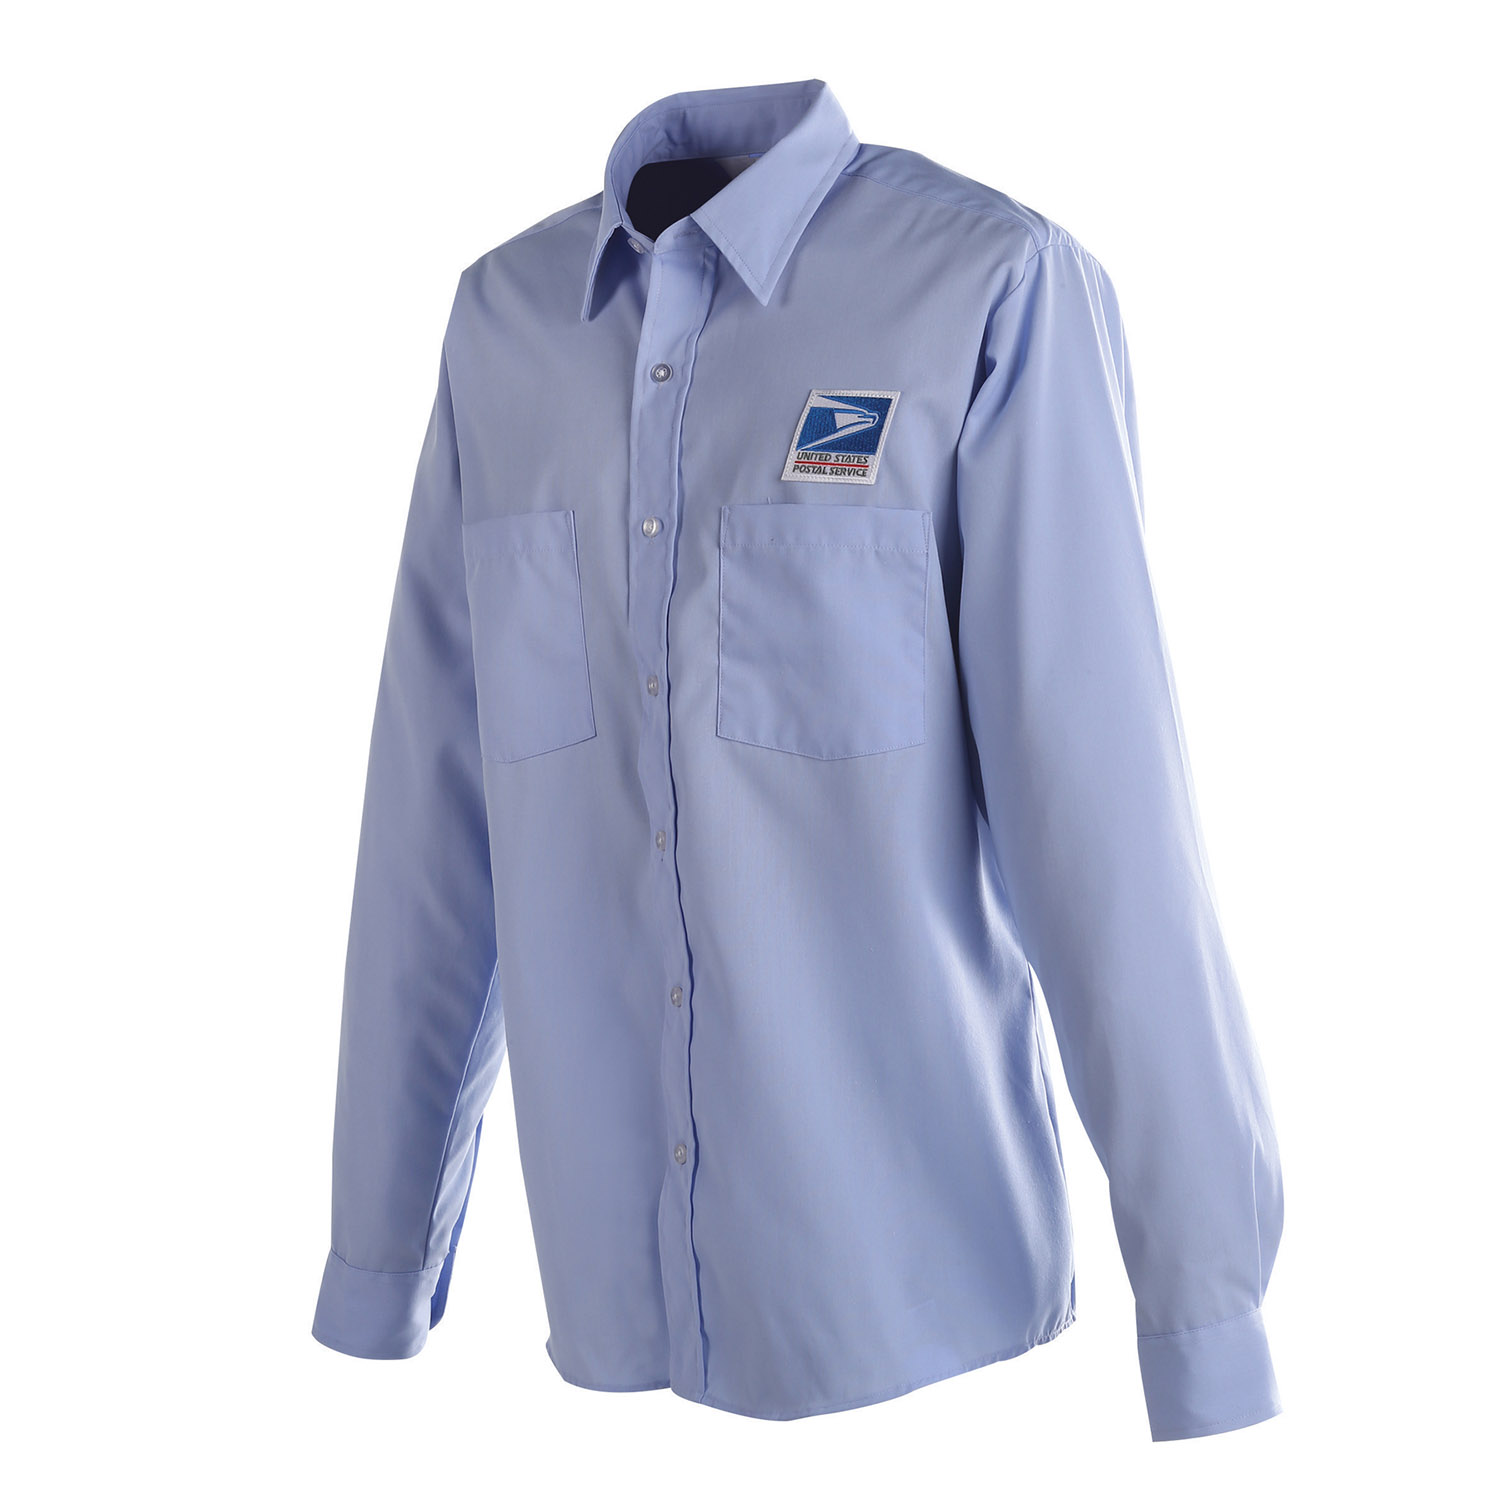 Postal Uniform Shirt Mens Long Sleeve for Letter Carriers...